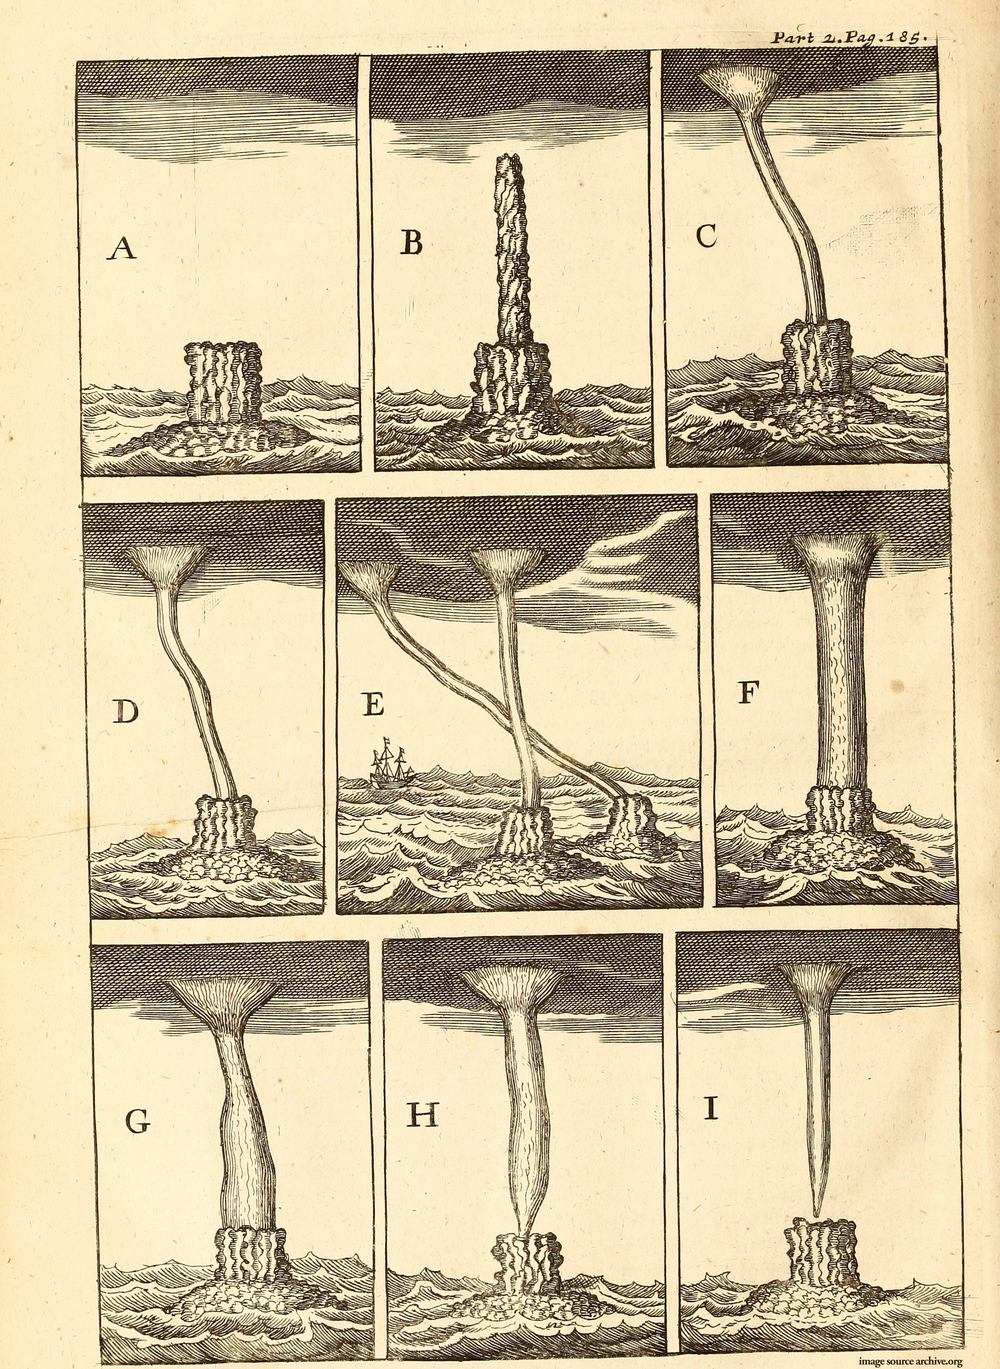 "A description of a  spout  [waterspout] by  Jean de Thévenot  (1633–1667) a French traveller, linguist, natural scientist and botanist. The waterspout occurred on 11 December 1665 ""northward between us and the isle of Quesomo [ Kish Island  in the Persian Golf] about a Musket shot  [approximately 275 m ] from the Ship"" (Thévenot 1687, p.185).   sources:  The travels of Monsieur  Thévenot  into the Levant. In three parts. Viz. into I. Turkey. II. Persia. III. The East-Indies. Newly done out of French. London, 1686, Printed by H. Clarck, for H. Faithorne, J. Adamson, C. Skegnes, and T. Newborough, Booksellers in St. Paul's Church-Yard, MDCLXXXVII . via  archive.rog ."